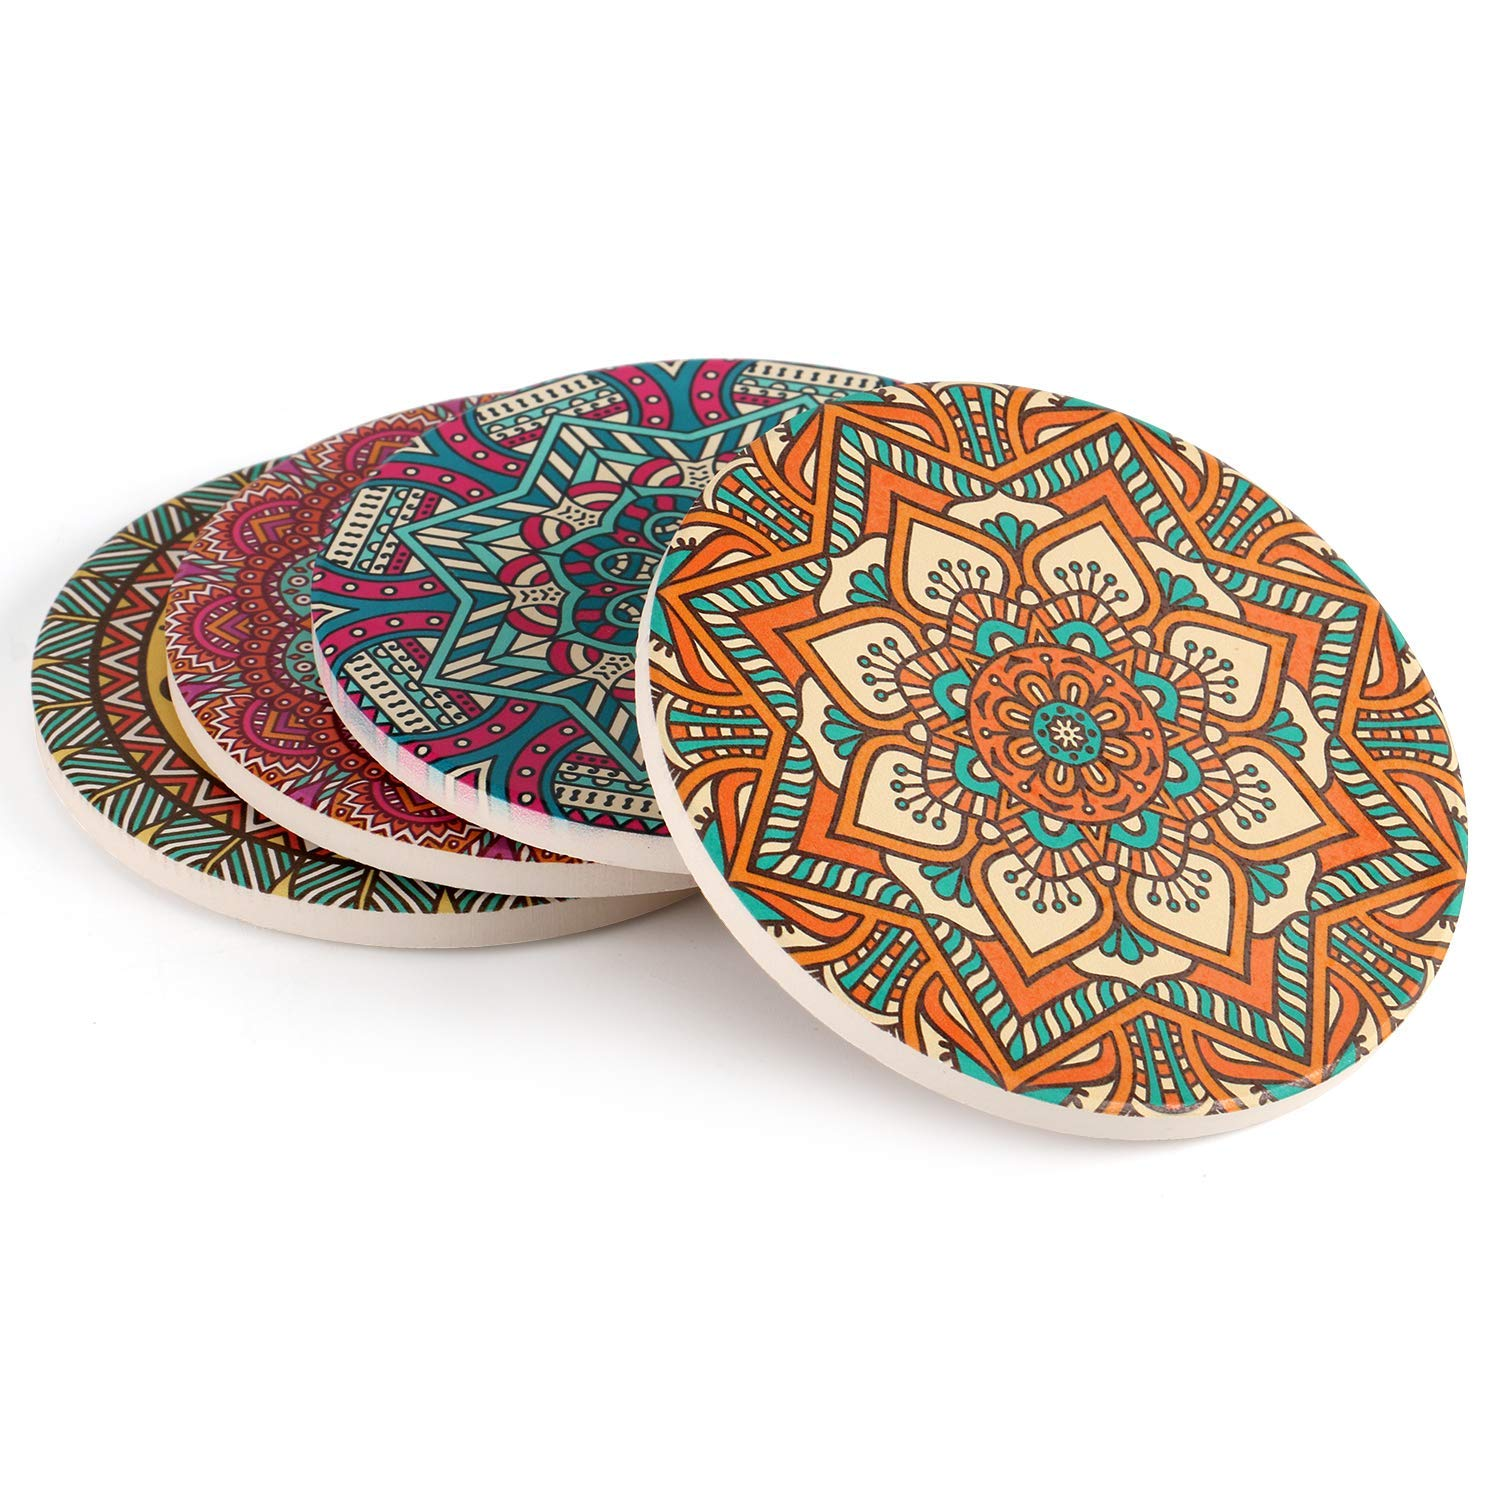 "Coasters for drinks set funny absorbent with cork base, Absorbing Ceramic Stone Protect Furniture From Water Dirty and Scratched 4"" size Suitable for Kinds of Mugs and Cups MANDALA designs Set of 4"